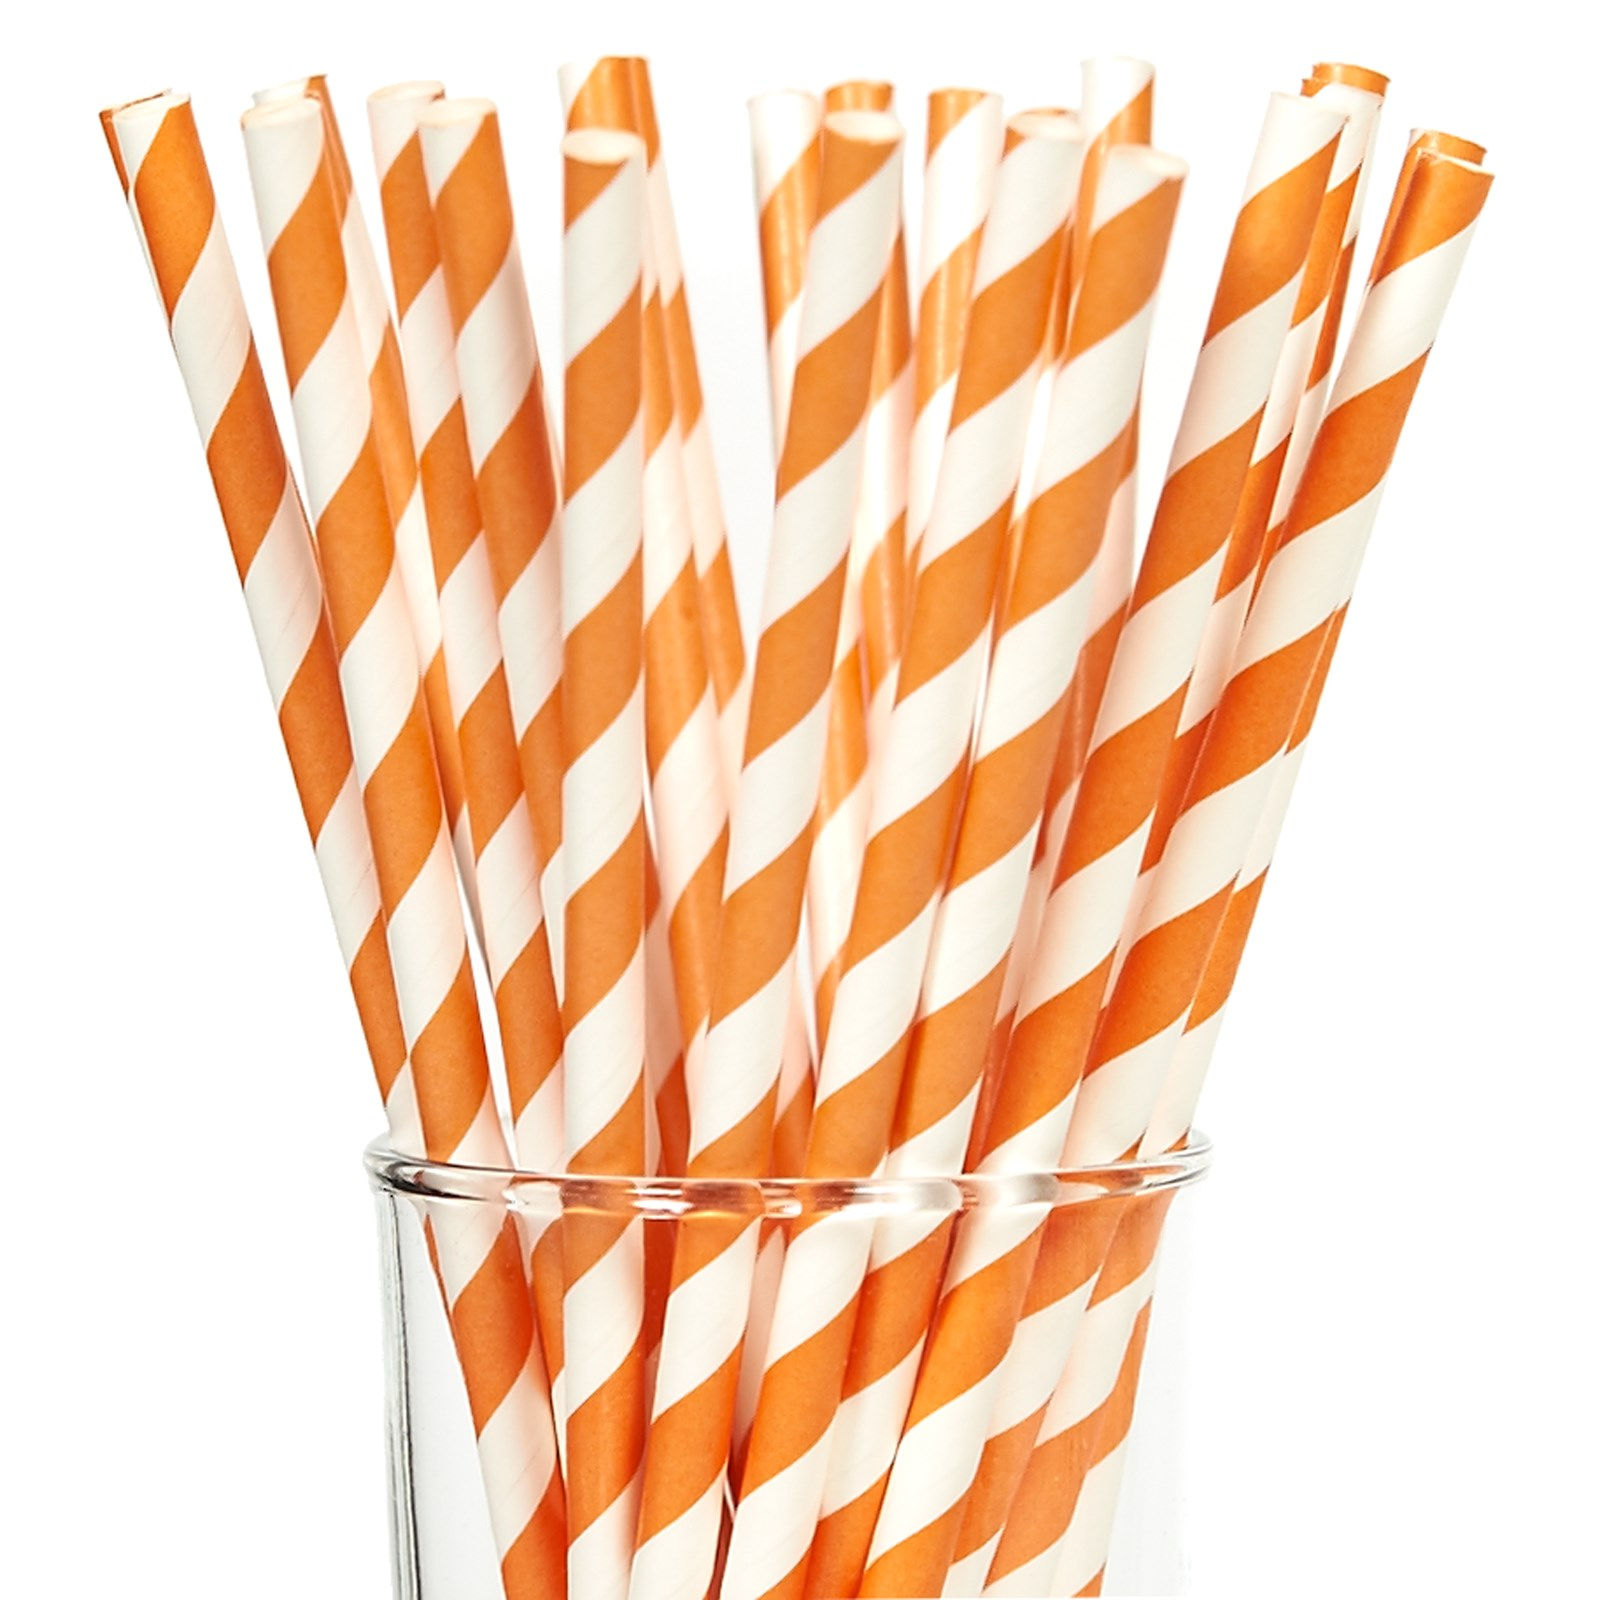 paper straws Amazoncom: kikkerland biodegradable paper straws, blue and white striped, box of 144: disposable drinking straws: kitchen & dining.